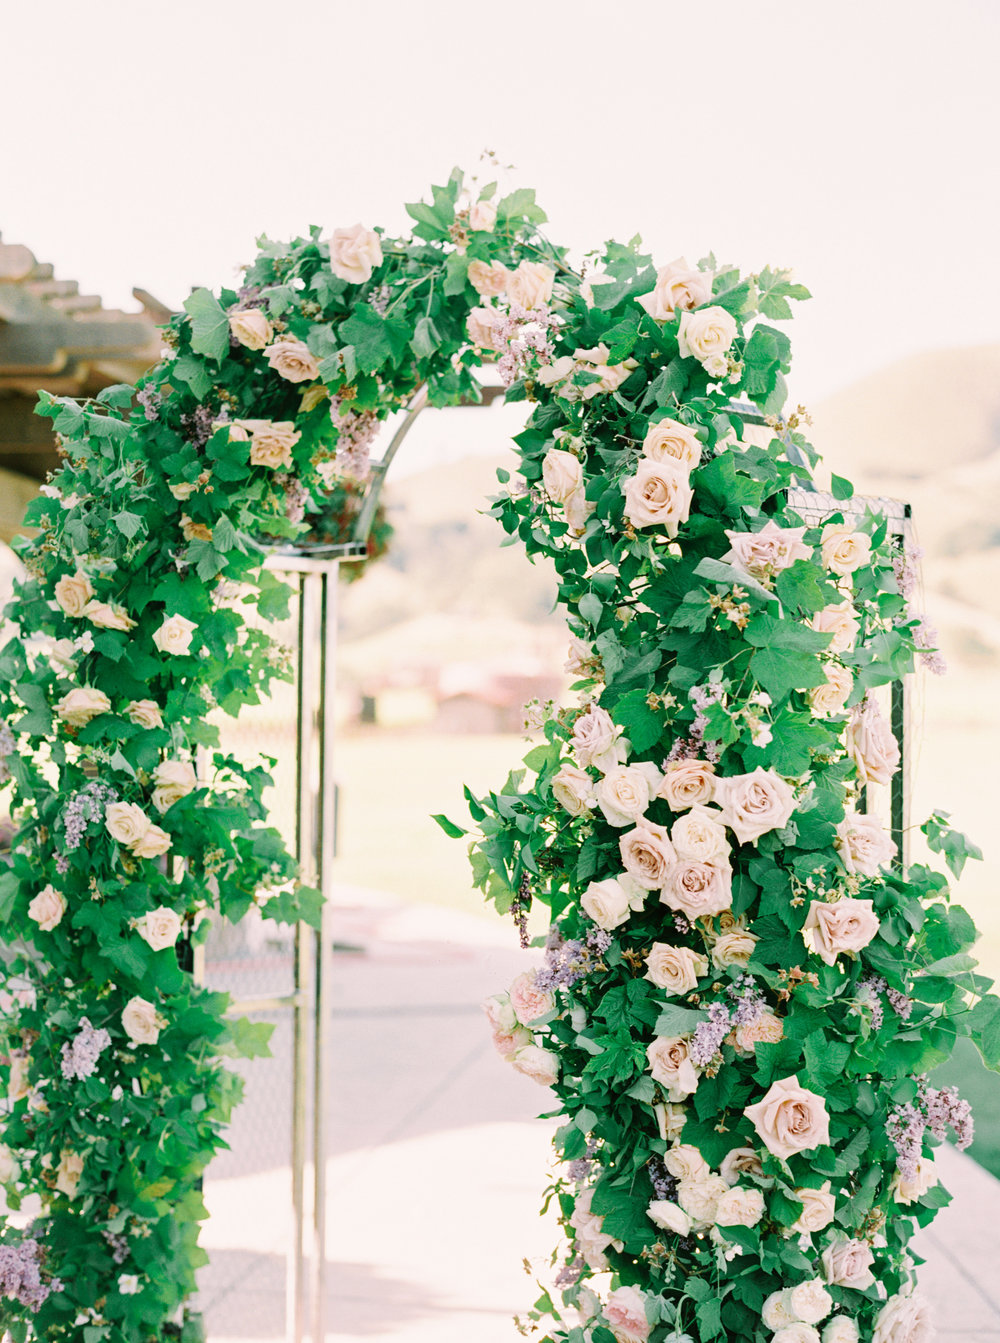 This-Love-of-Yours-Kirigin-Cellars-Flower-Arch-Styled-Shoot-114.jpg